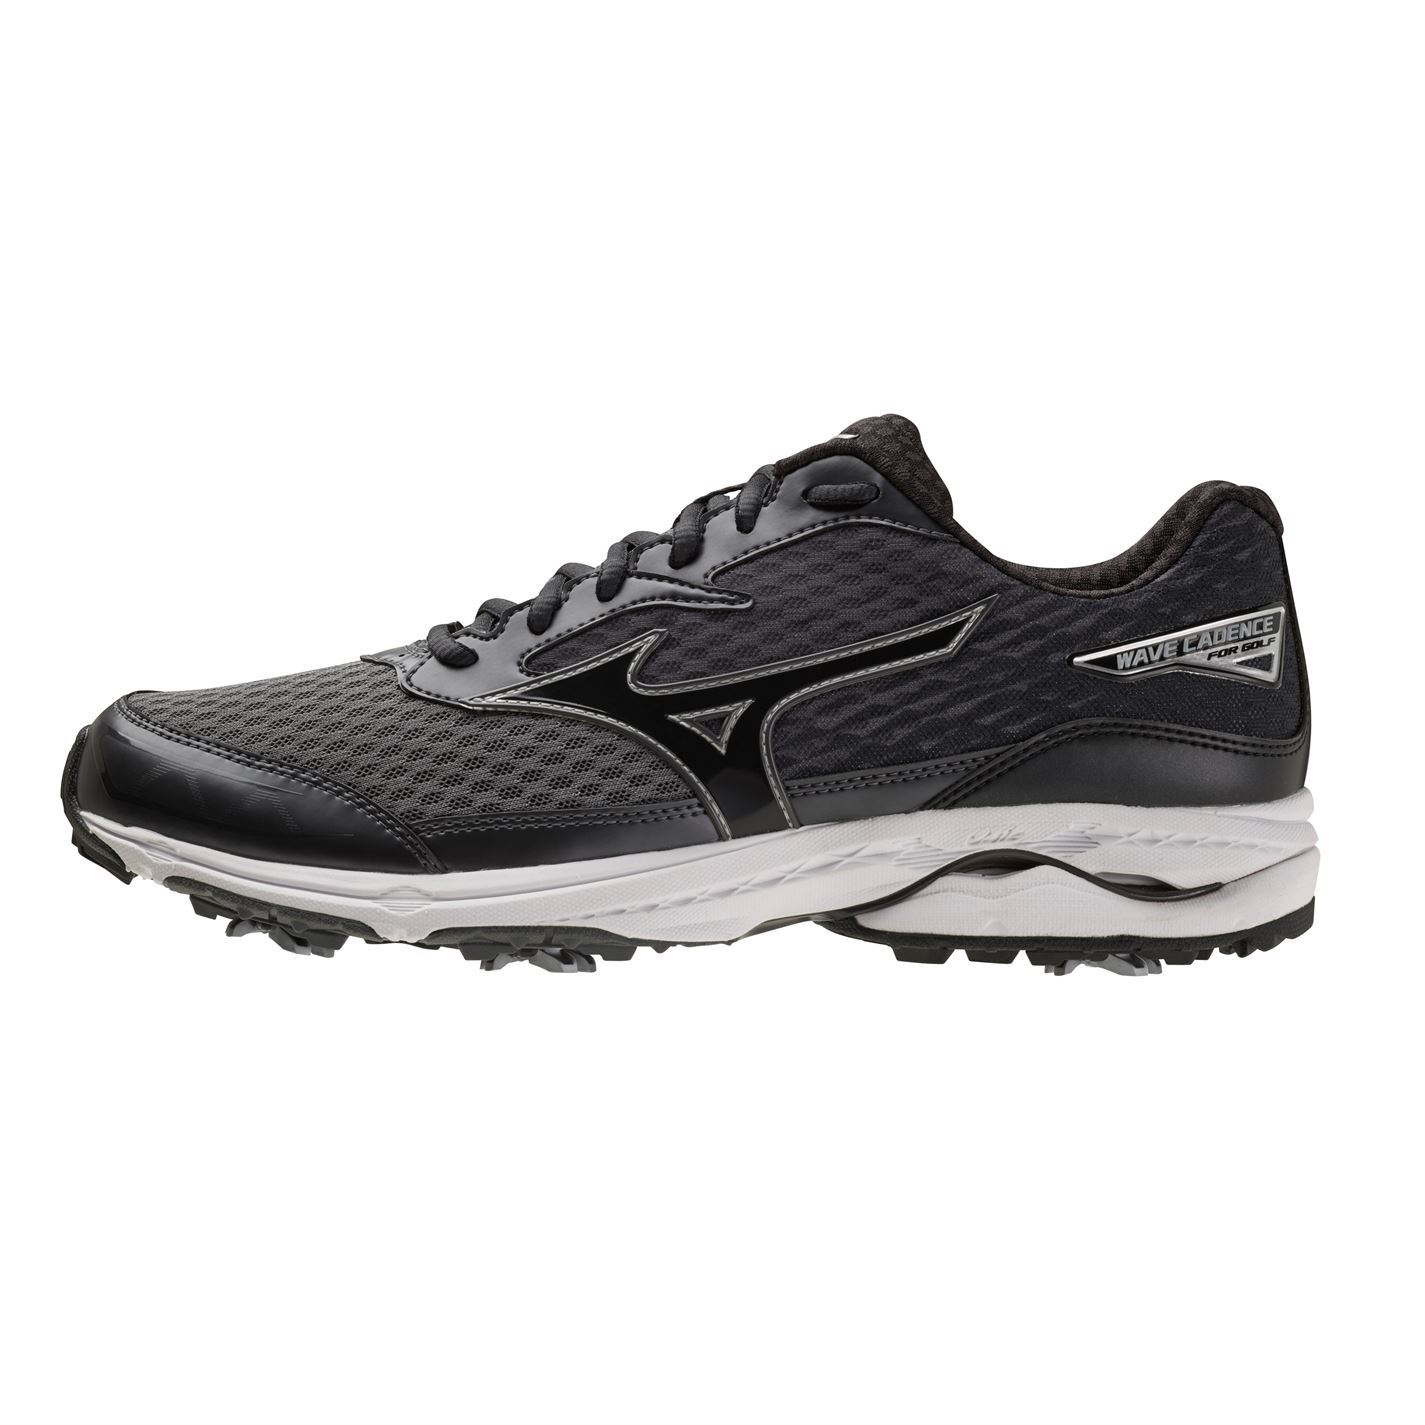 Mizuno-Wave-Cadence-Golf-Shoes-Mens-Spikes-Footwear thumbnail 6